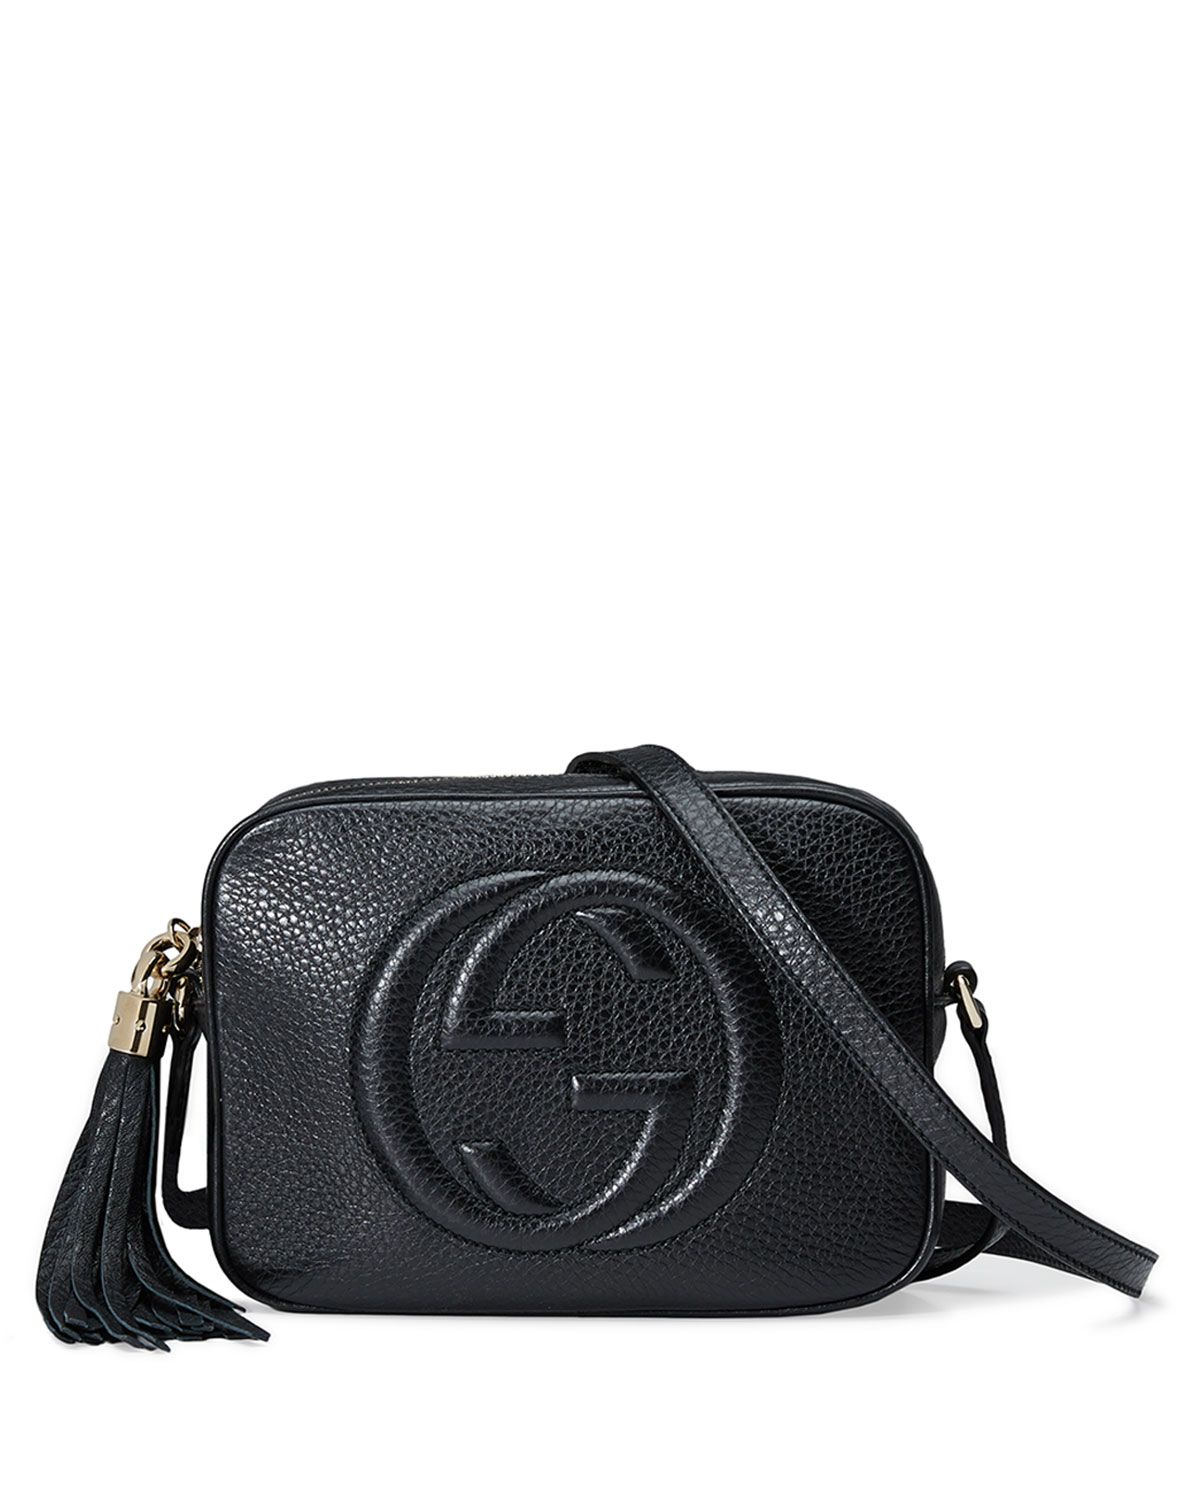 f4af4eaaaaab Gucci Soho Leather Disco Bag, Black | Neiman Marcus